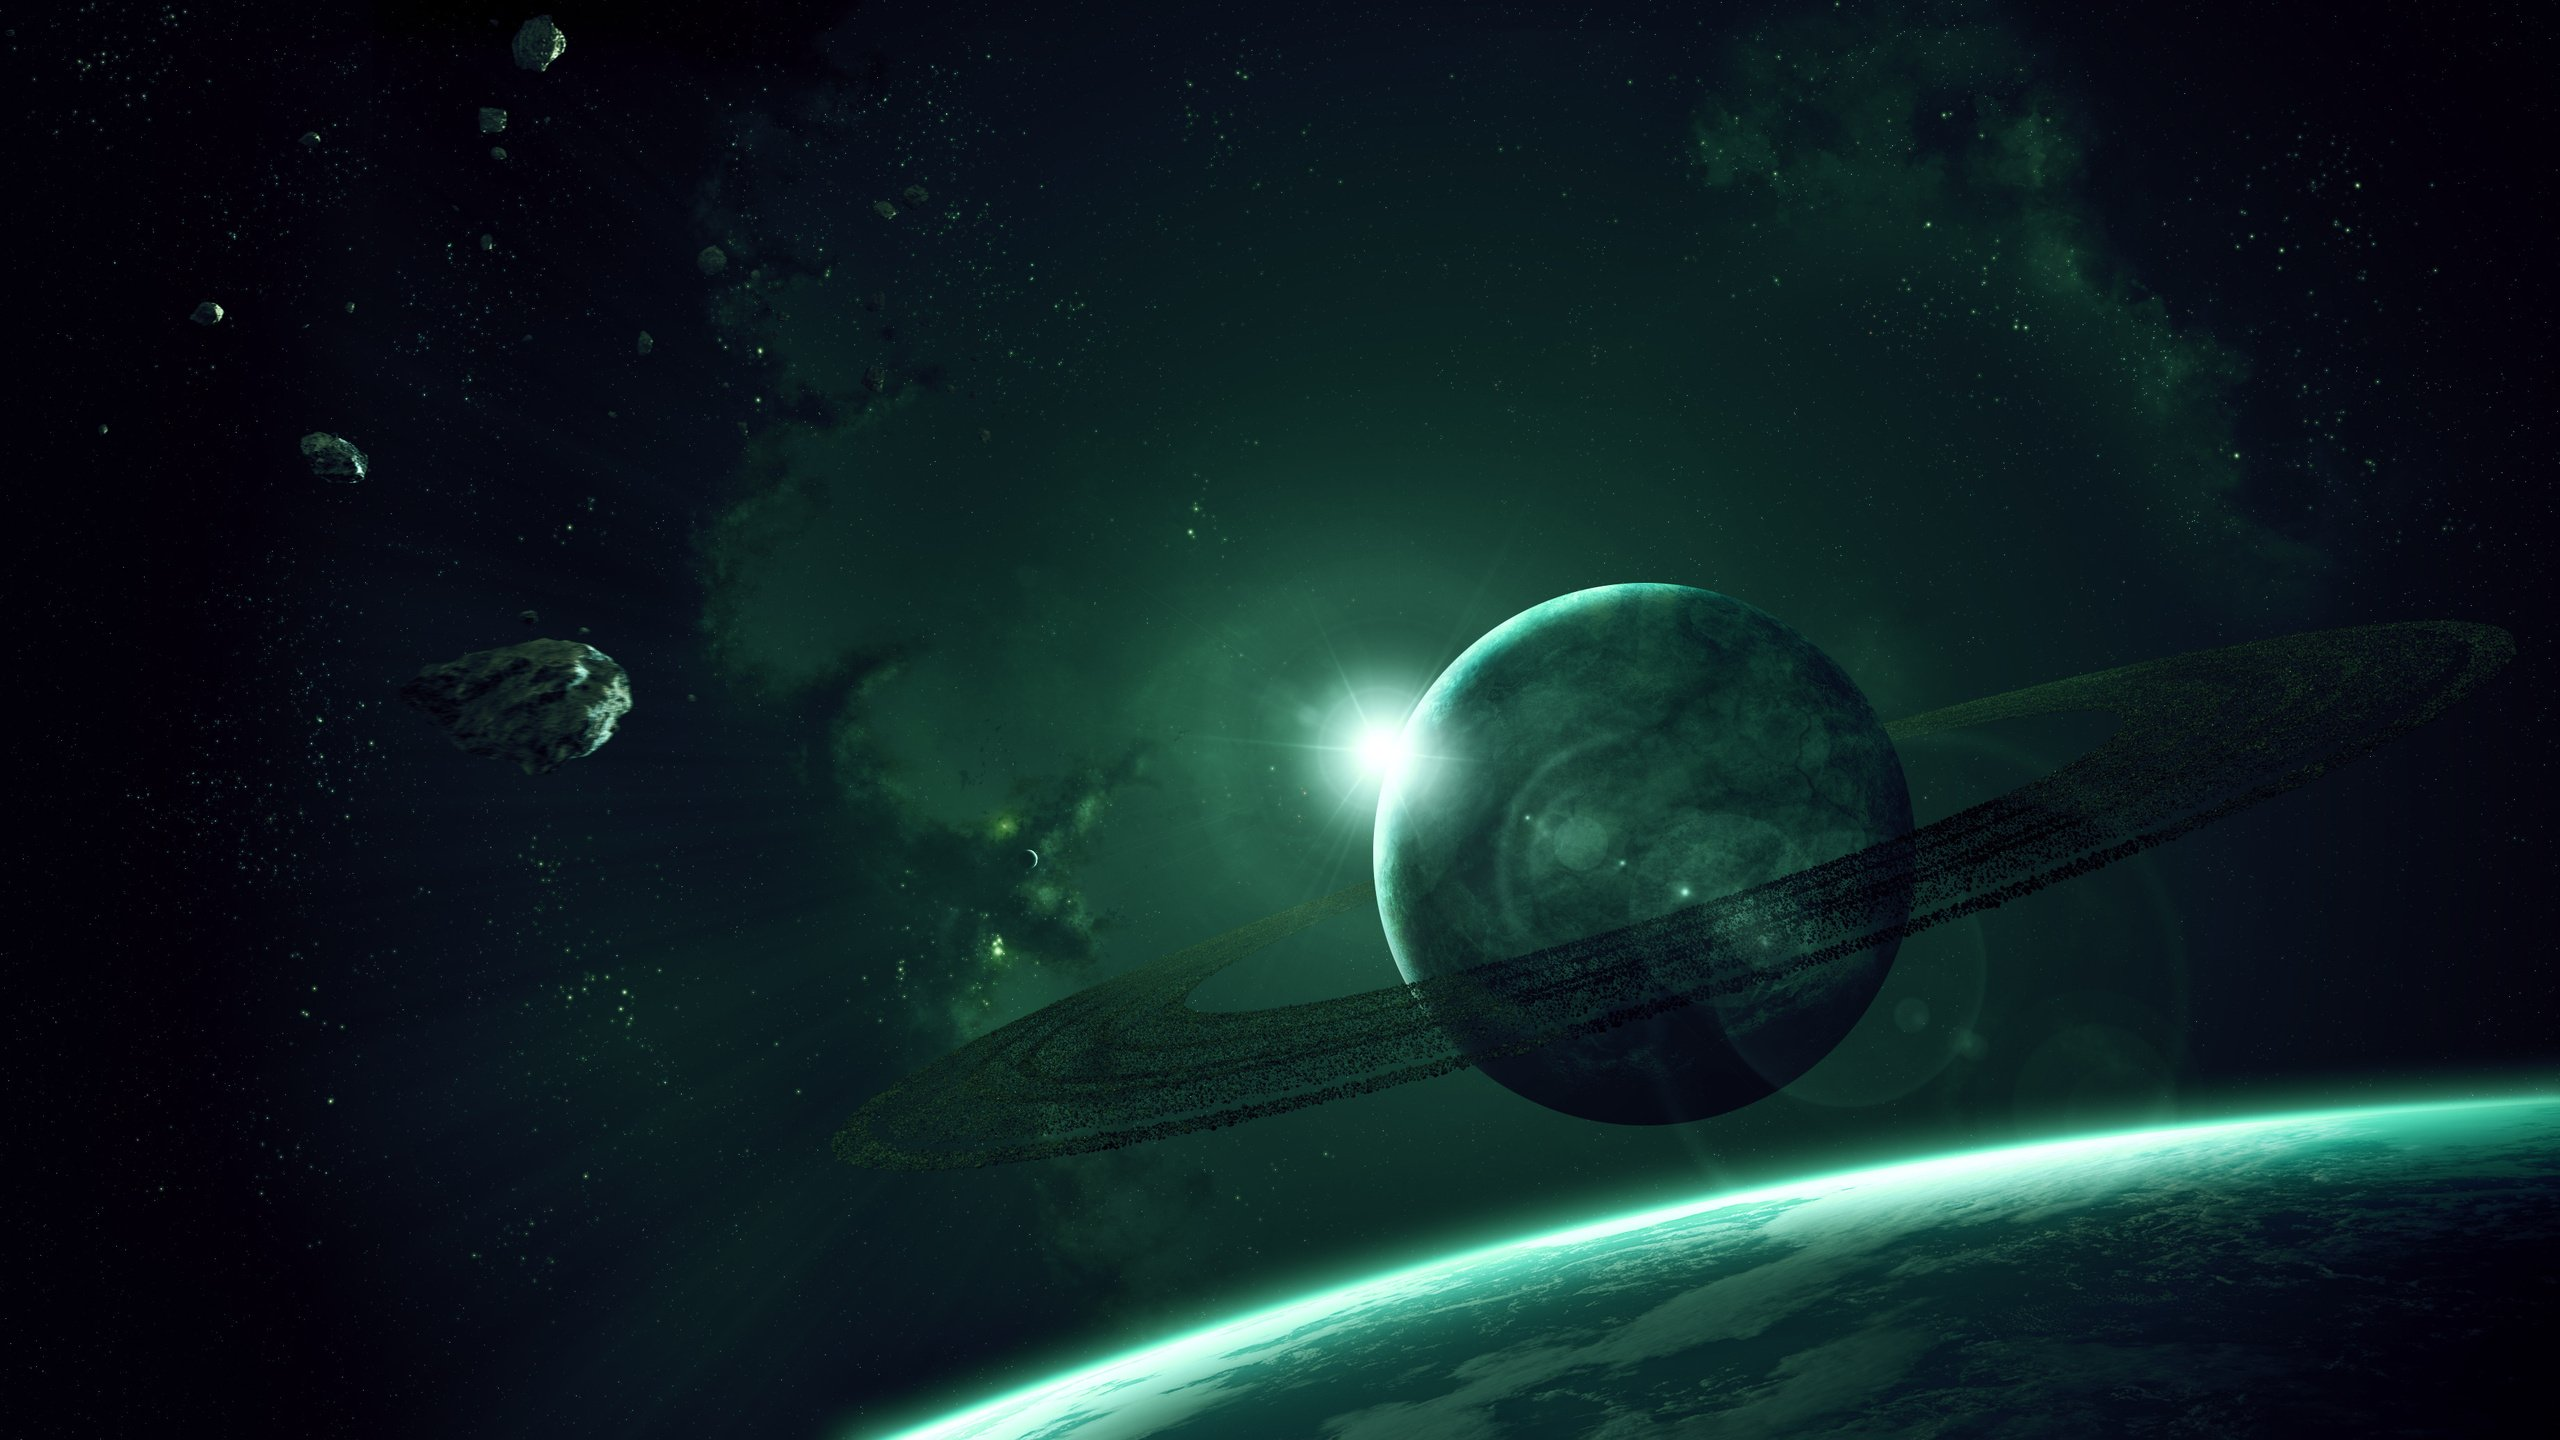 astronomy blue and green backgrounds - photo #45